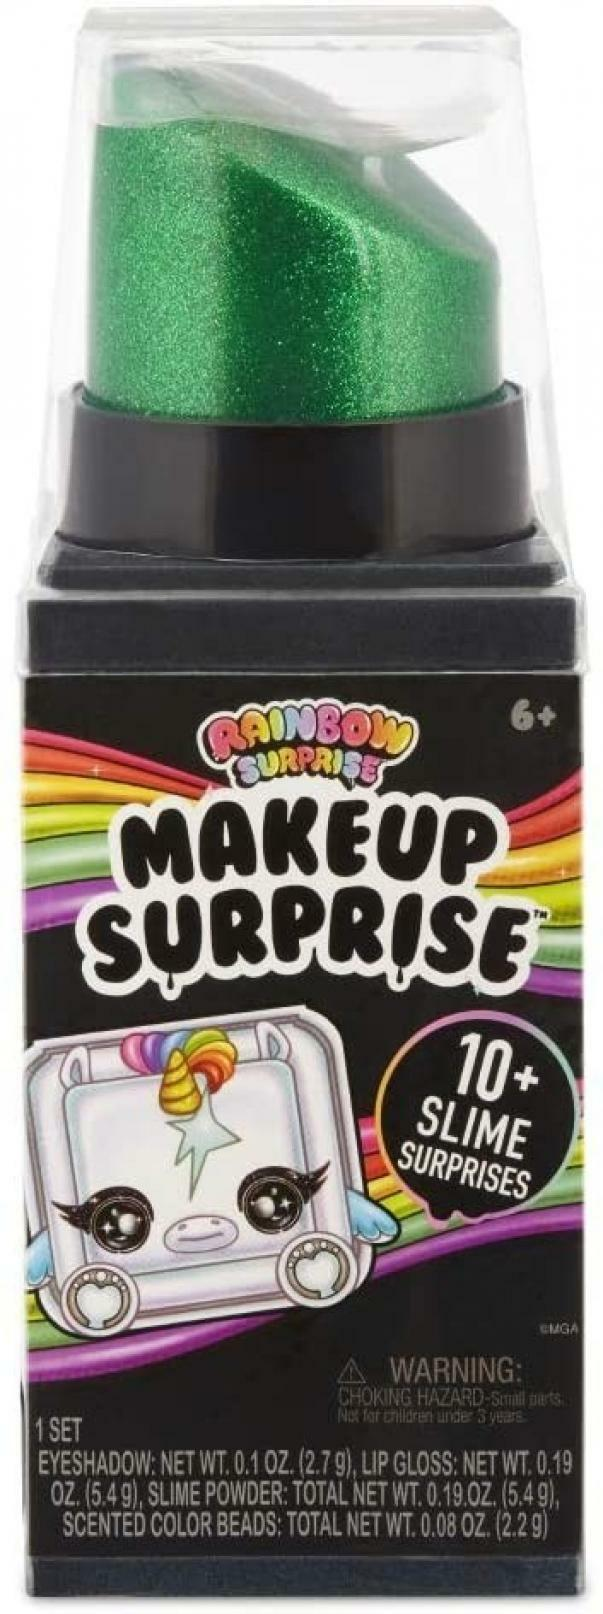 giochi preziosi poopsie make up surprise rossettone